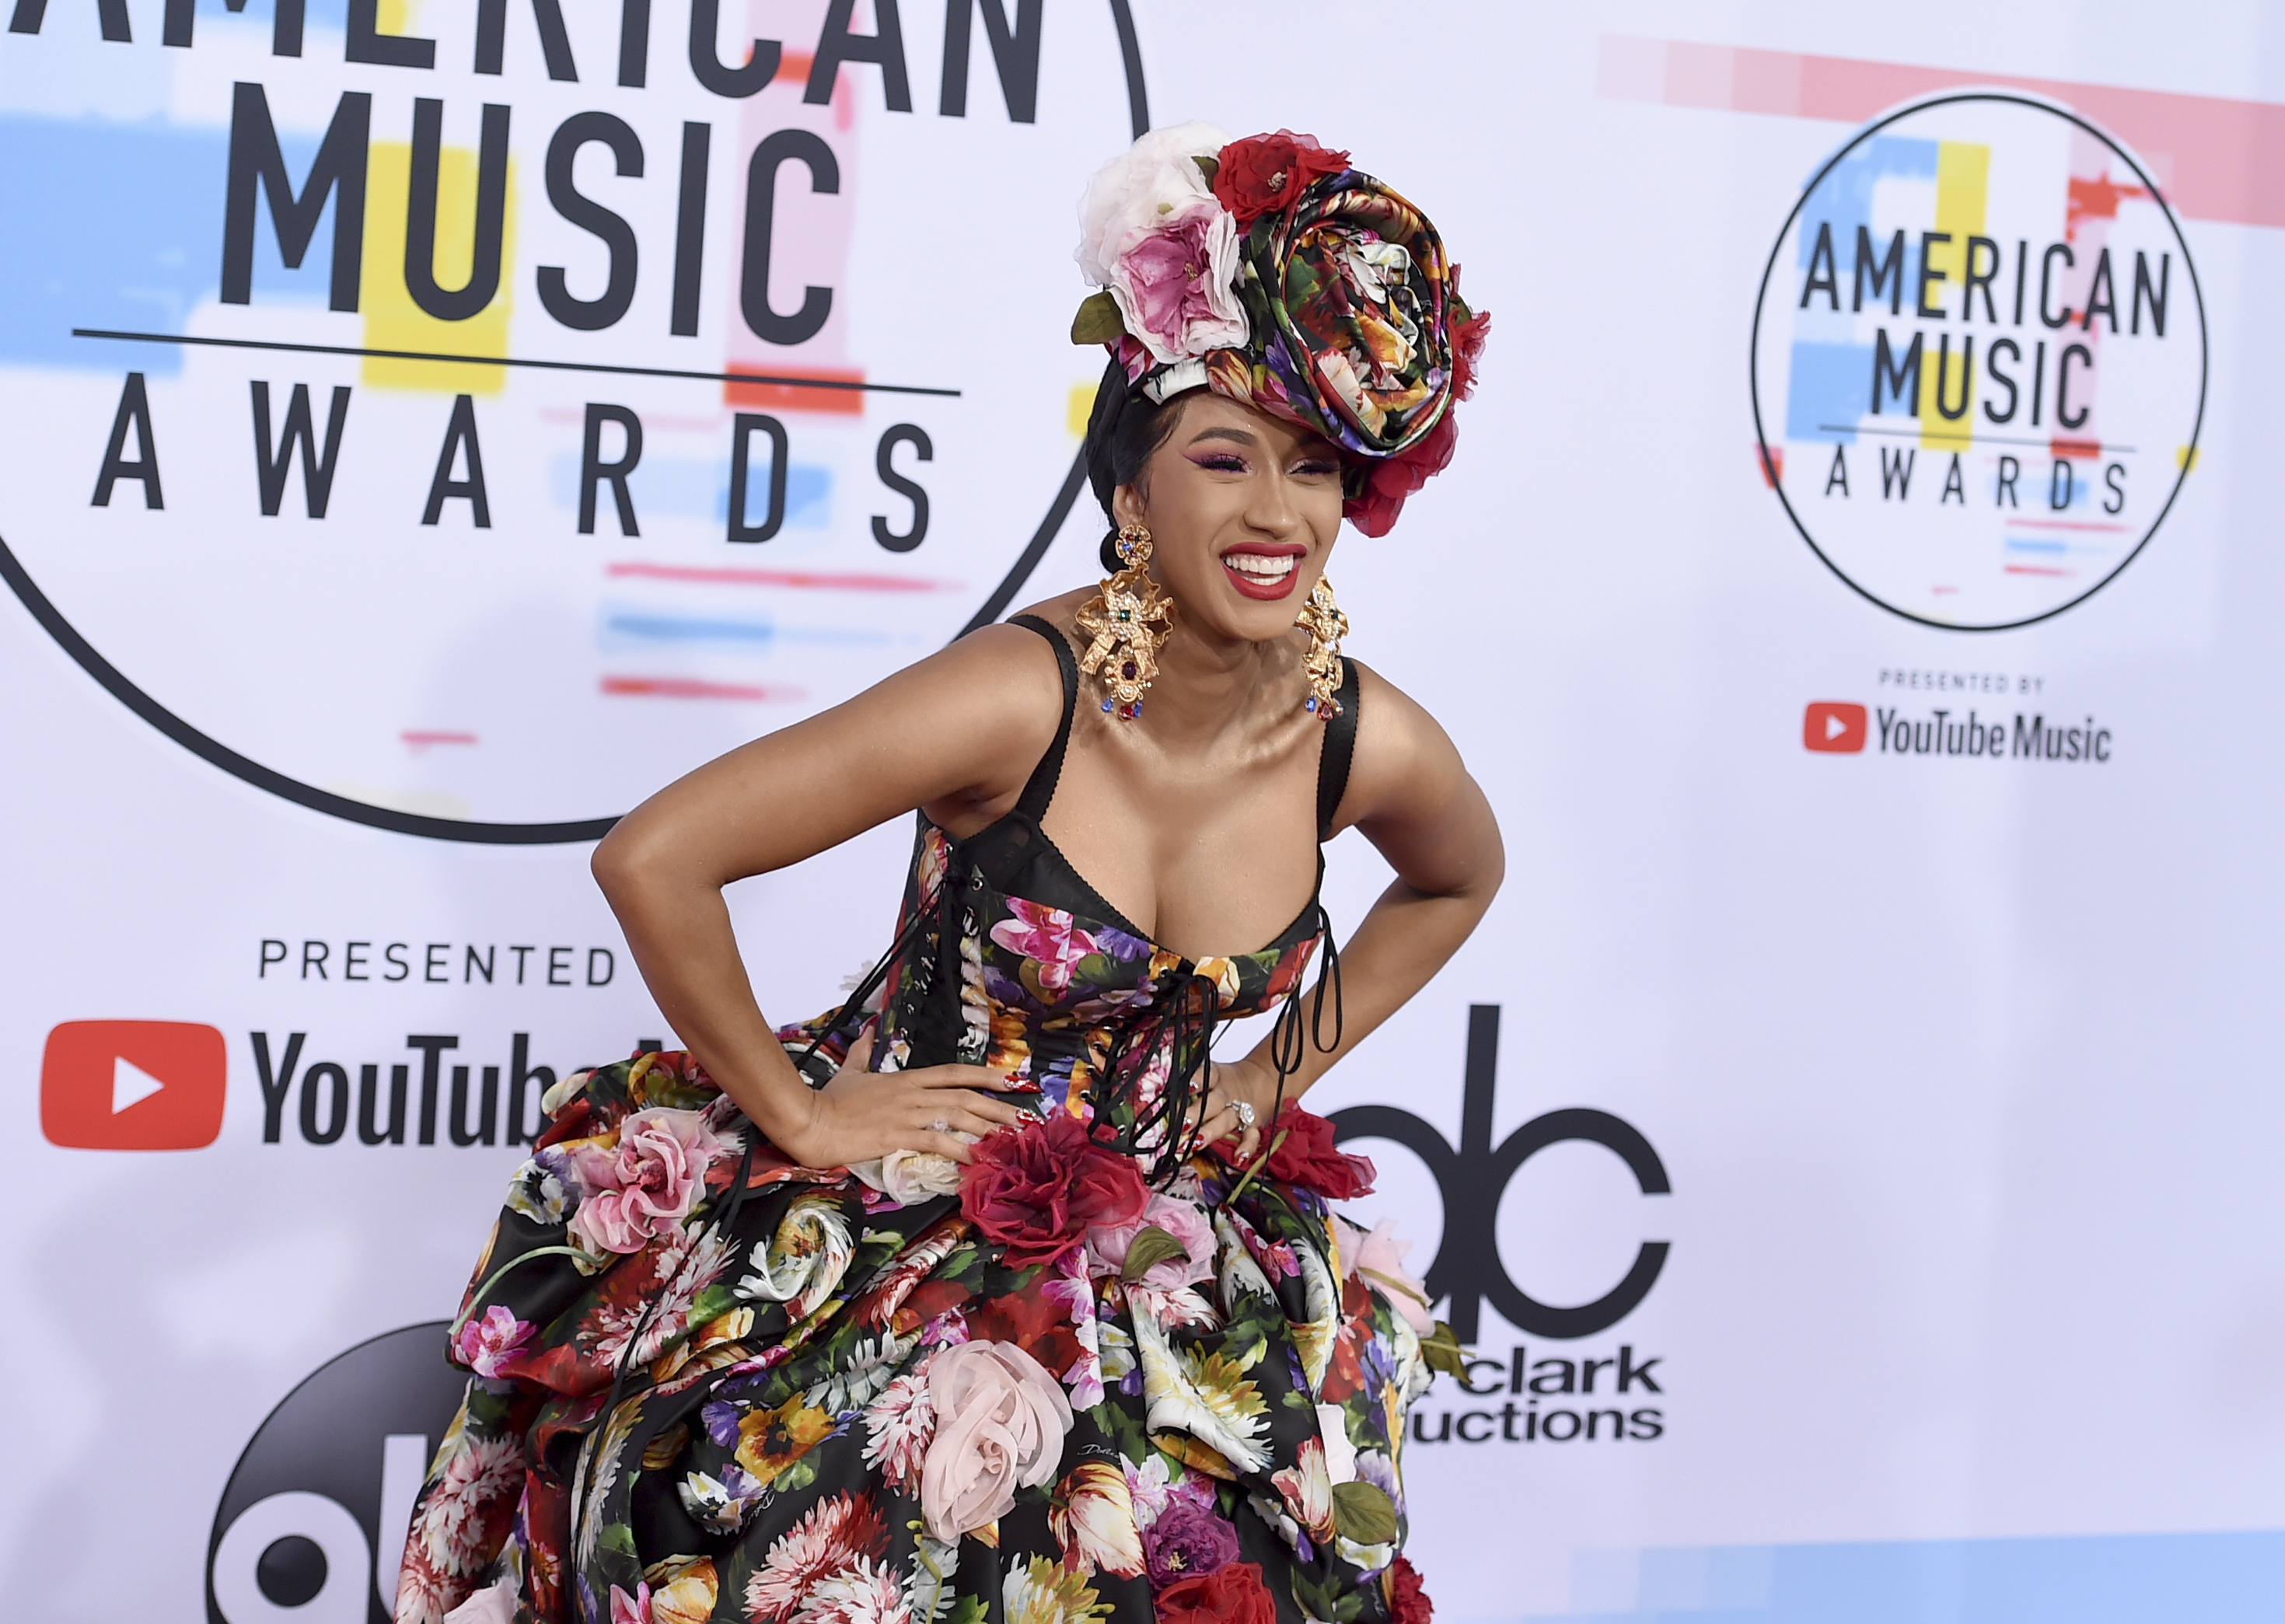 "<div class=""meta image-caption""><div class=""origin-logo origin-image none""><span>none</span></div><span class=""caption-text"">Cardi B arrives at the American Music Awards on Tuesday, Oct. 9, 2018, at the Microsoft Theater in Los Angeles. (Jordan Strauss/Invision/AP)</span></div>"